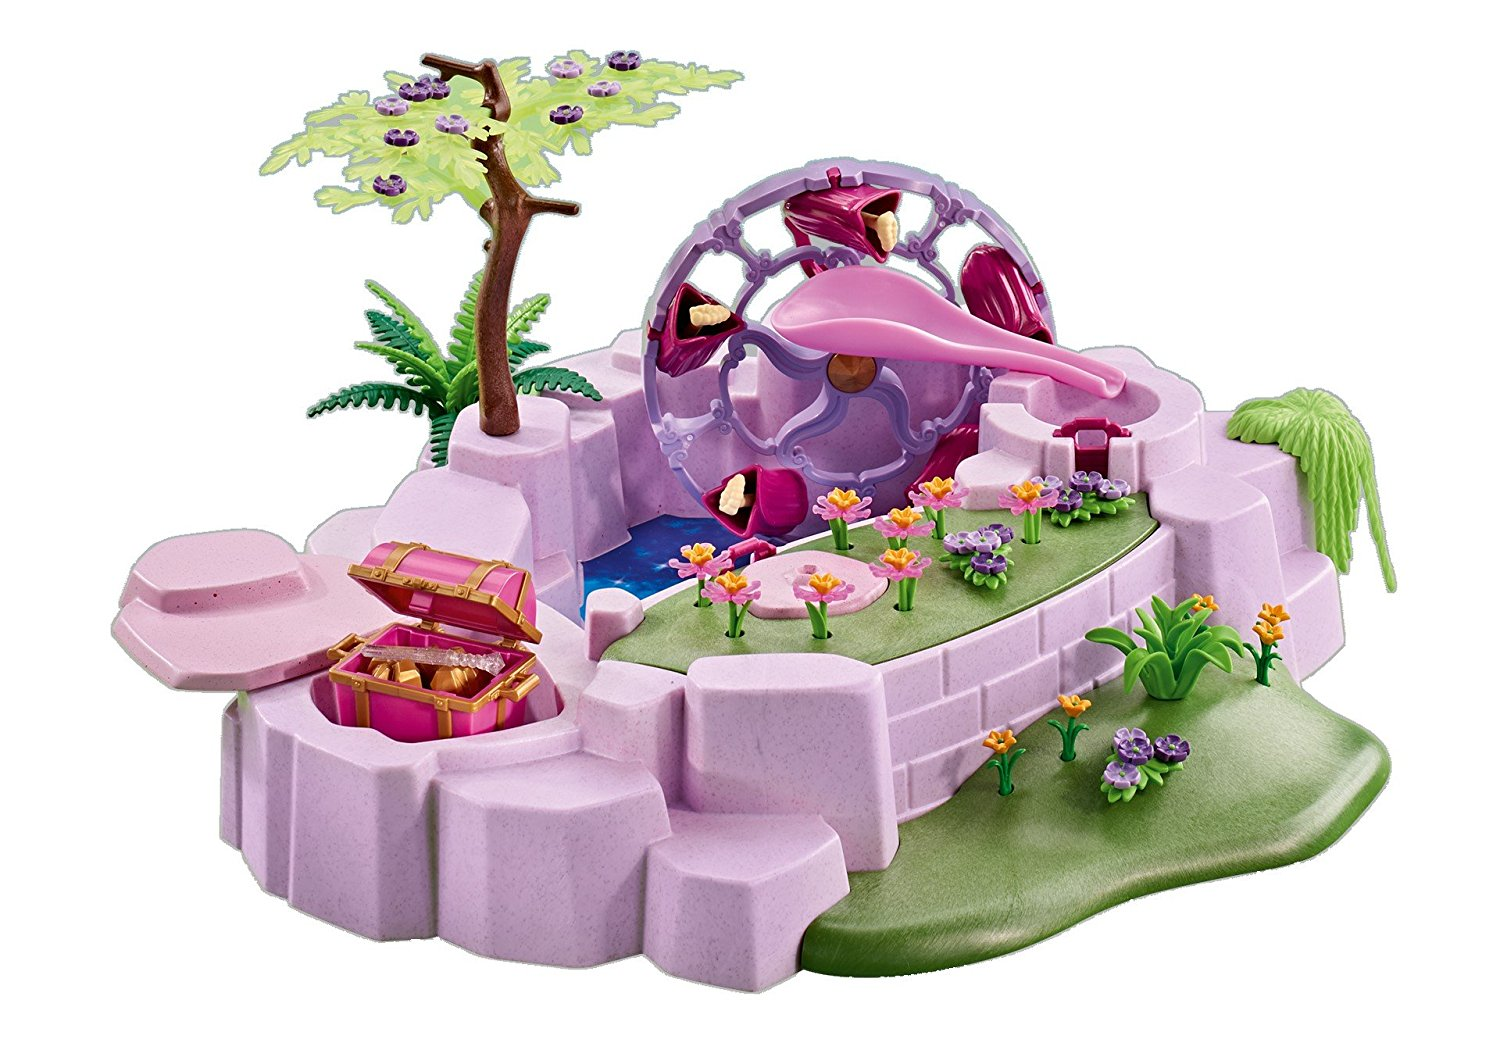 PLAYMOBIL Add On 6563 Enchanted Fairy Pond by Playmobil